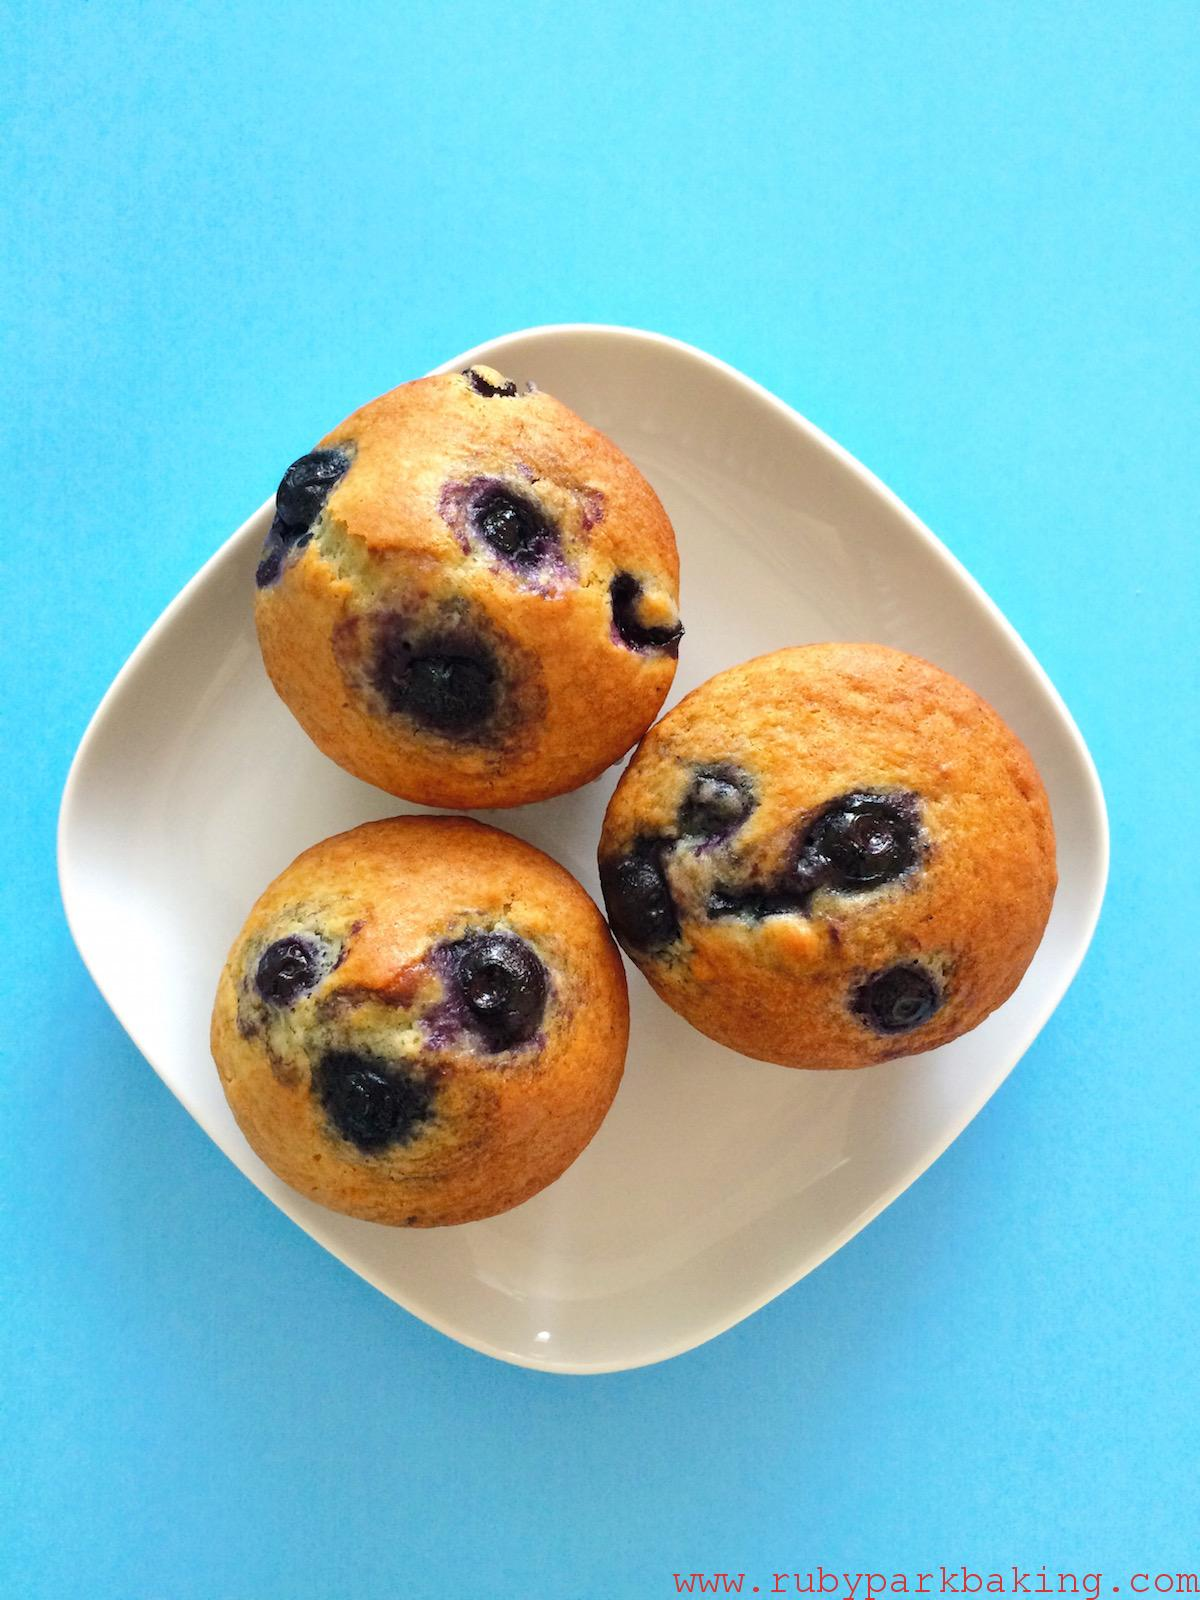 Blueberry muffins, there aren't non butter! on rubyparkbaking.com